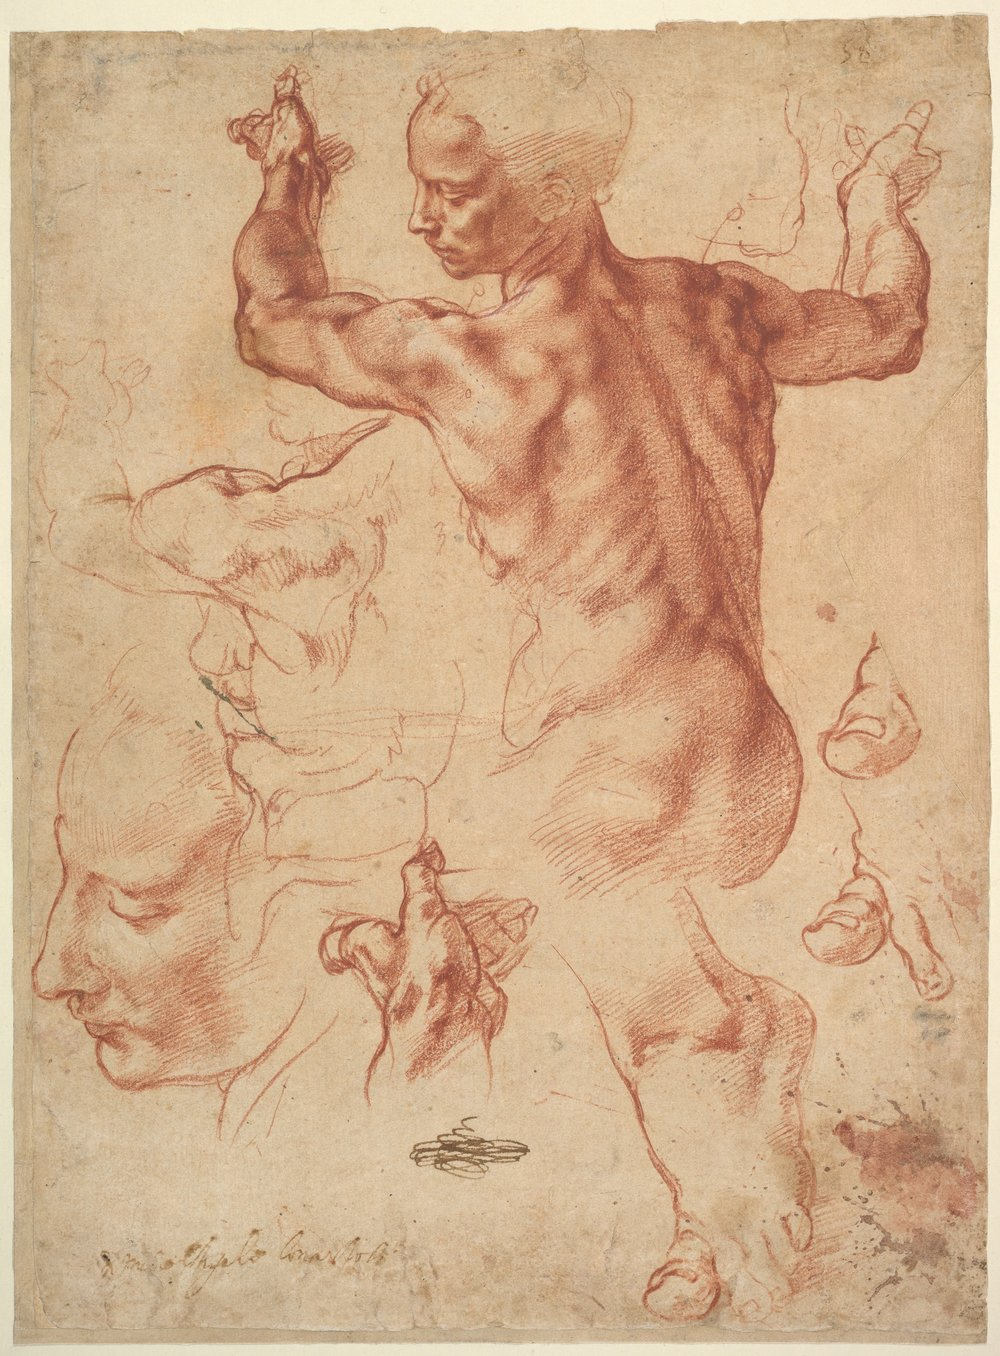 MIchelangelo figure studies, collection of the Metropolitan Museum of Art.